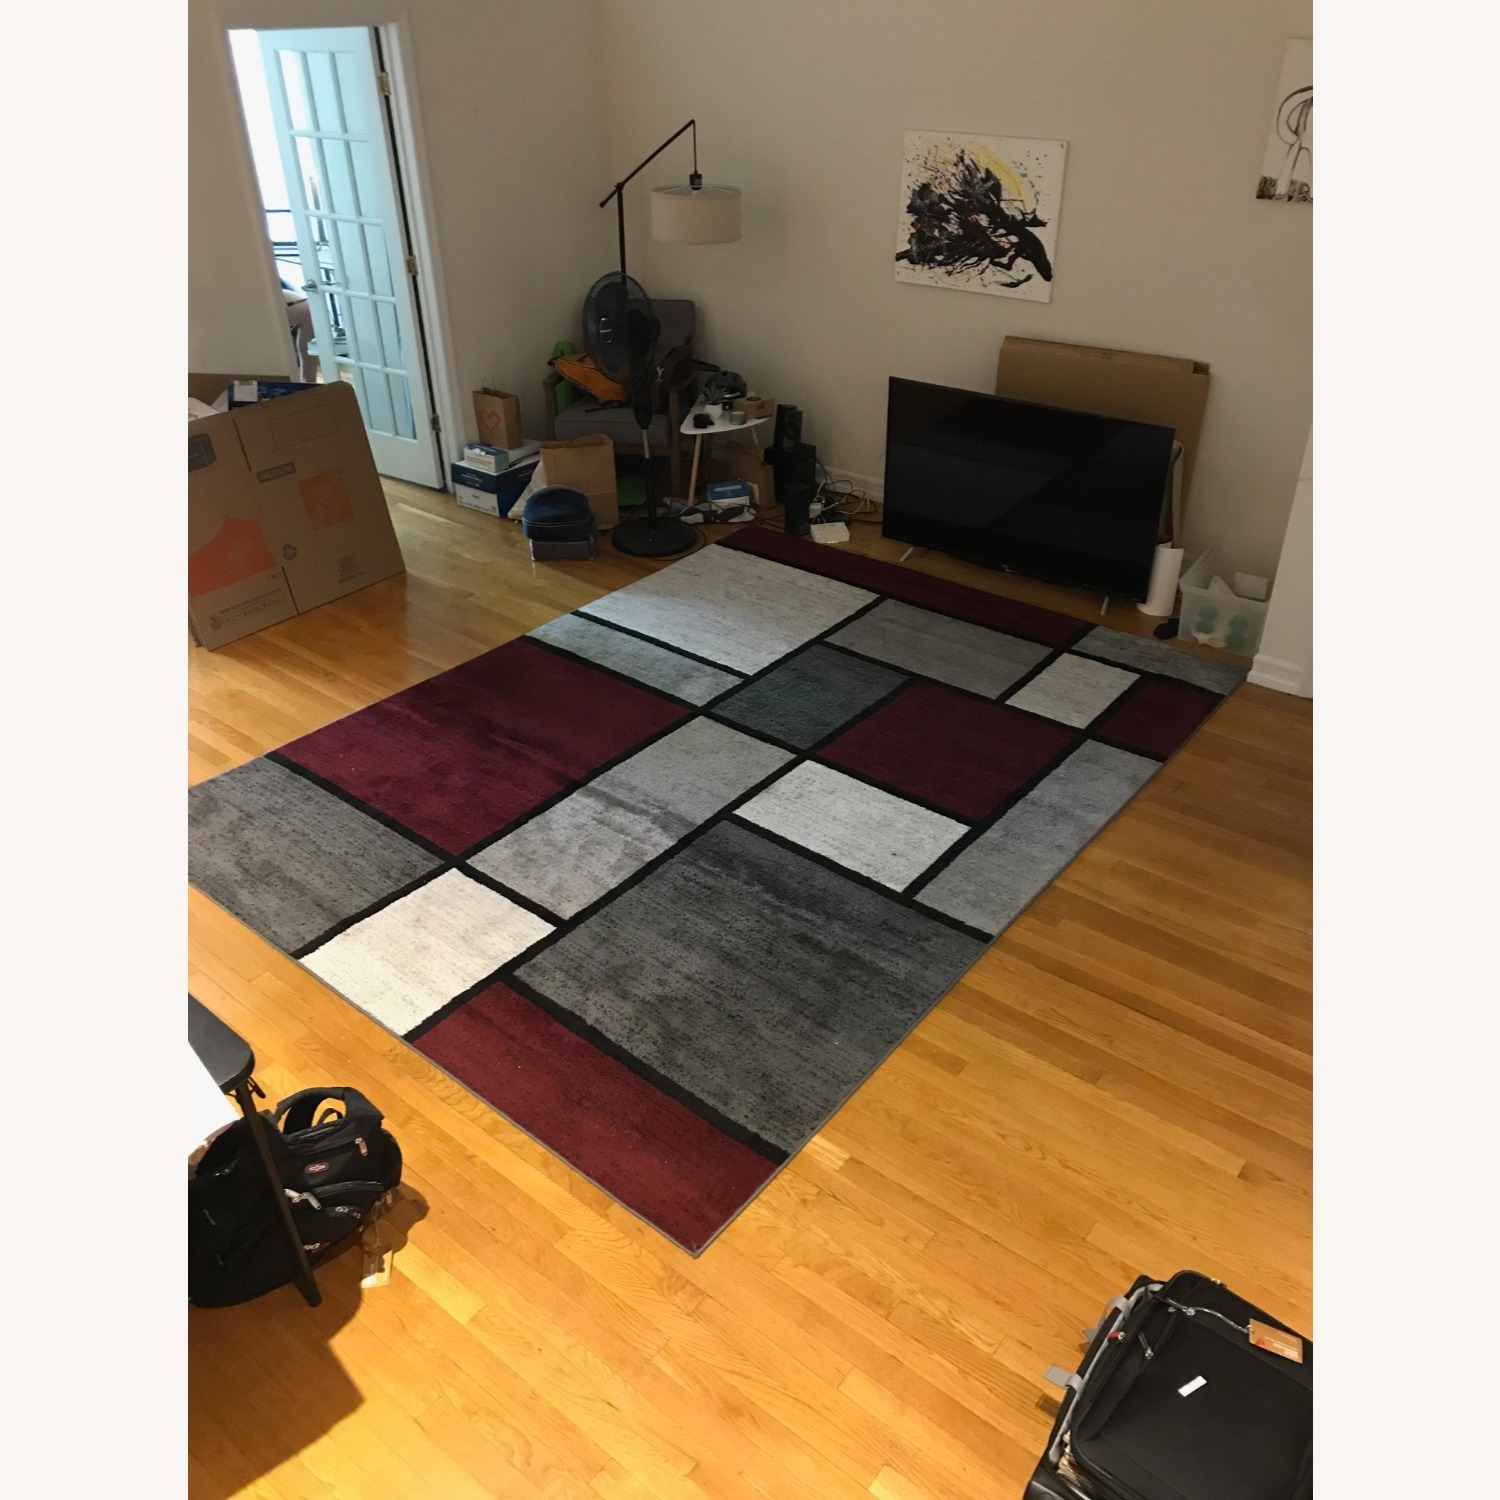 8' x 10' Red White and Grey Area Rug w Rug Pad - image-4